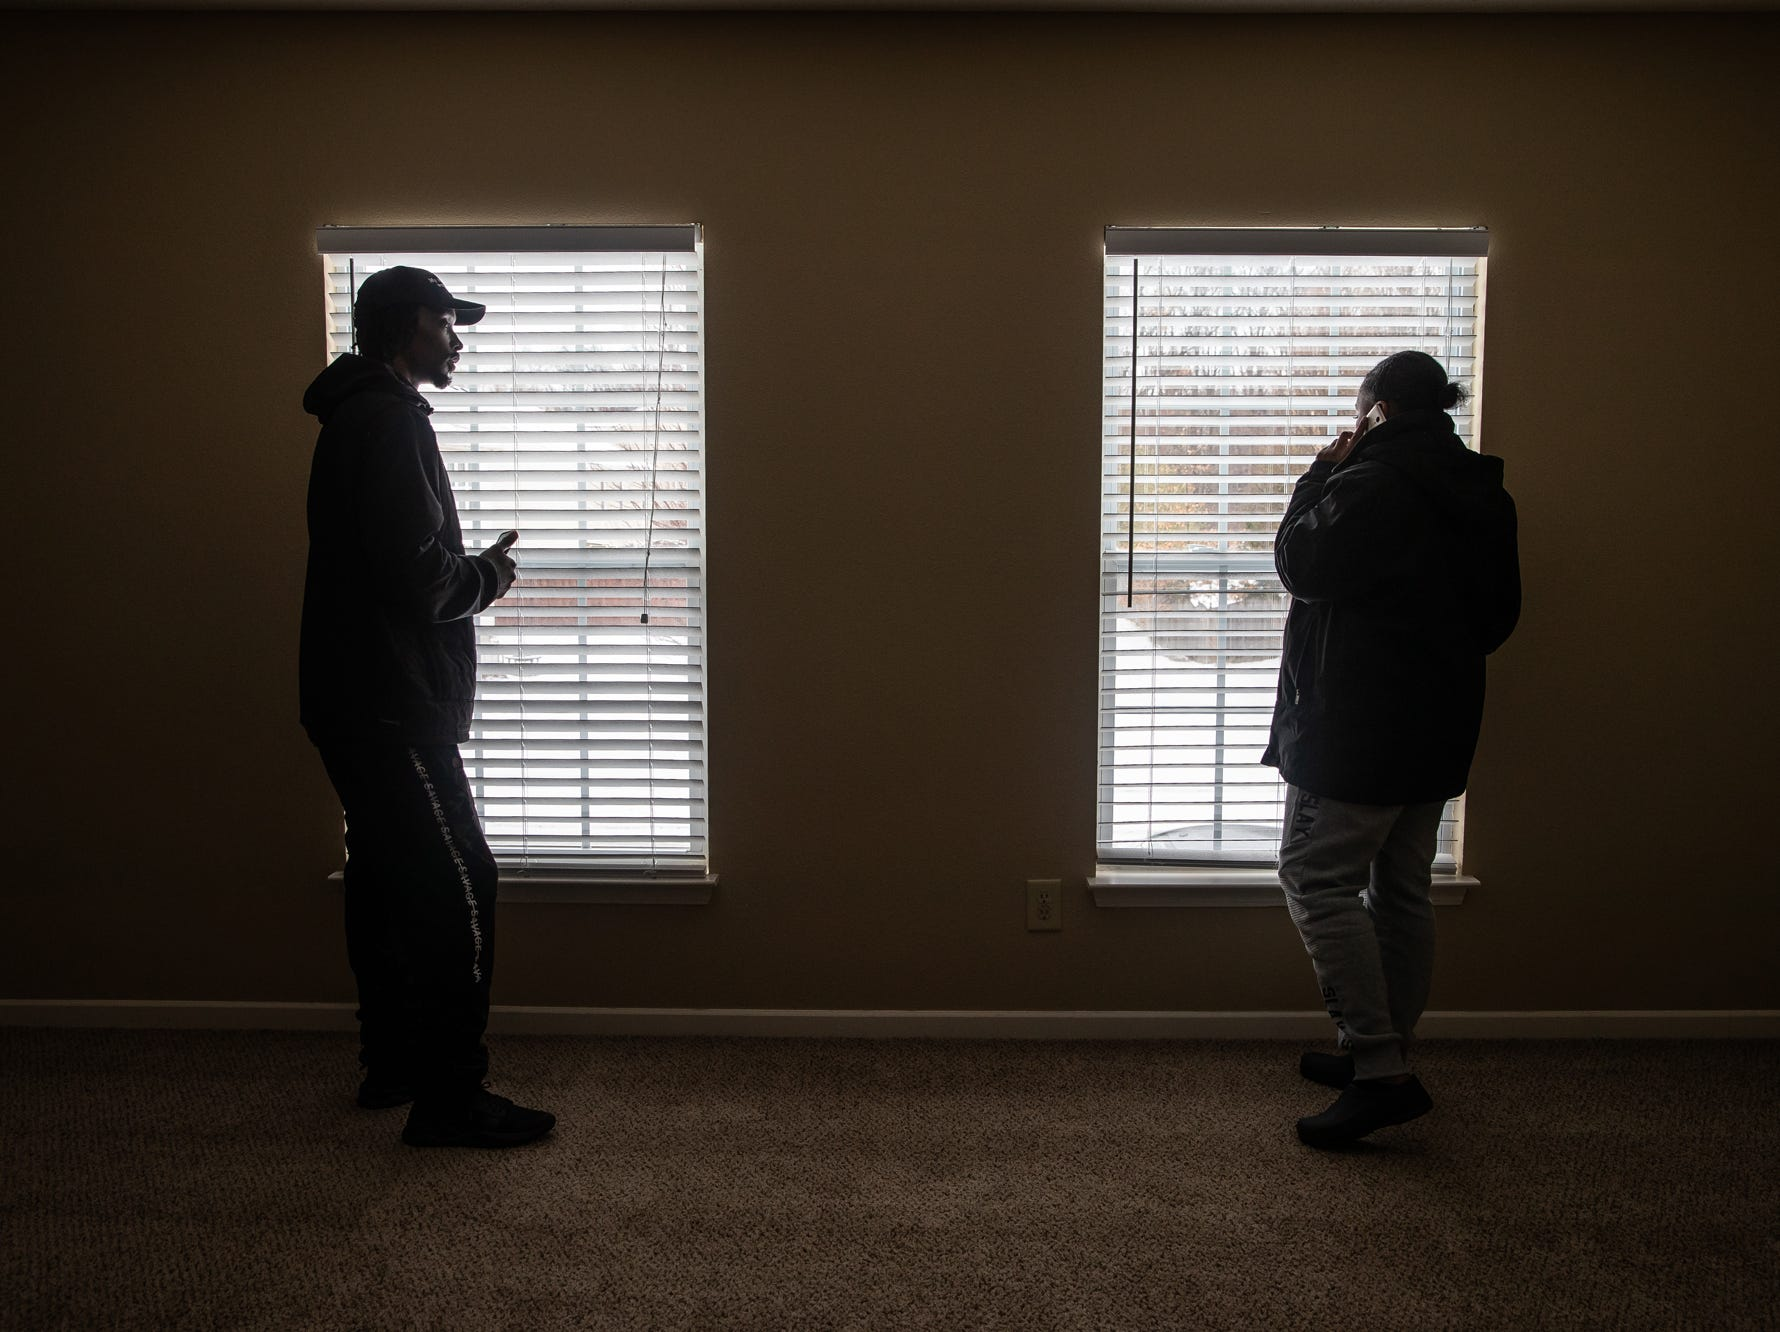 """Charles and Latasha look out the windows in the master bedroom of a home they are attempting to rent near Brownsburg, Ind., on Wednesday, Feb. 20, 2019. """"I've got Friday off of work. We can just come here after they get out of school,"""" said Latasha, about her three kids."""